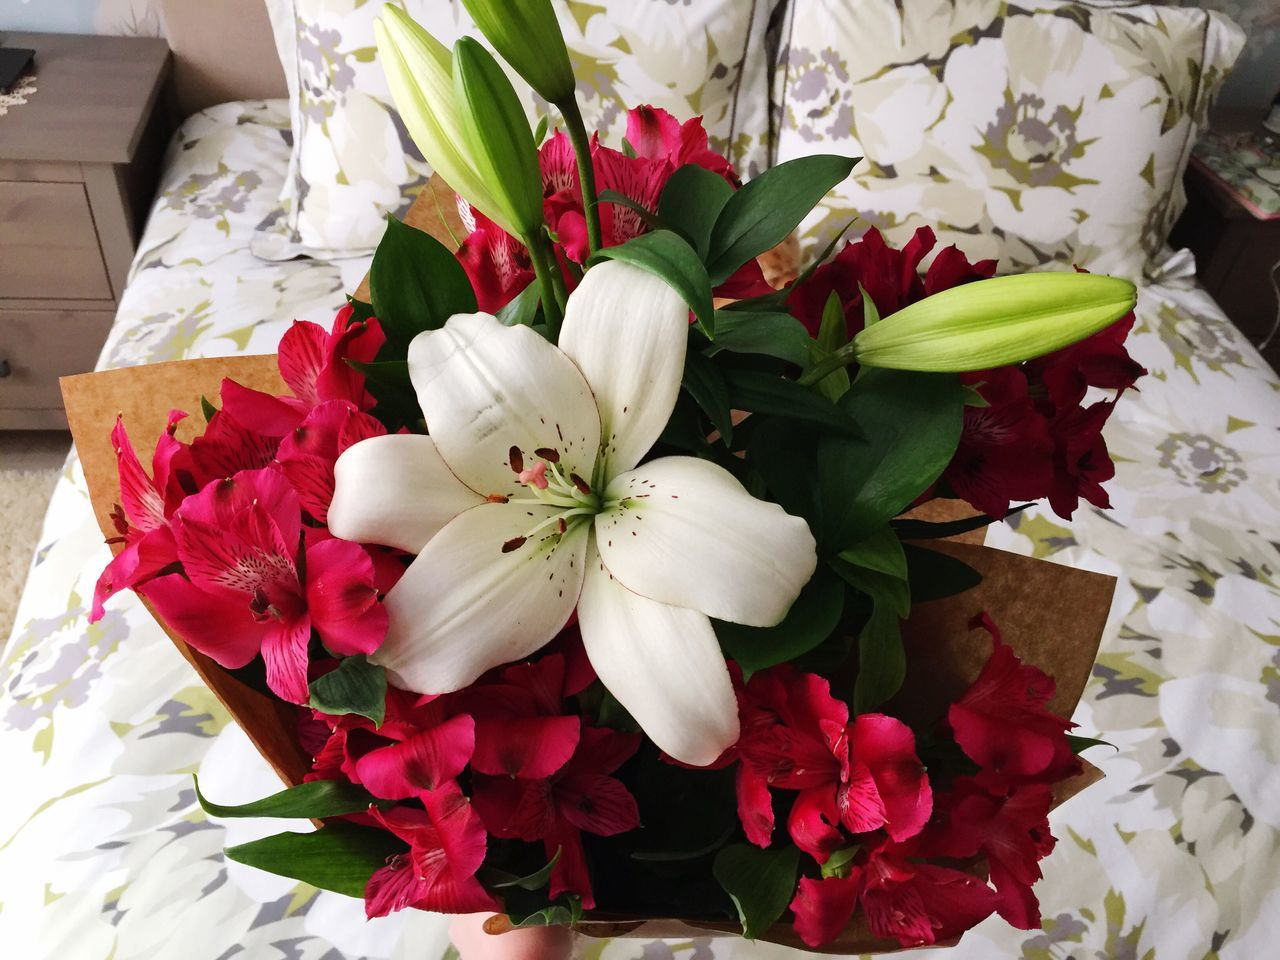 Flower Blossom No People Bouquet Indoors  Flower Head Lilies In Bloom Lilies Flower Bouquet  Pink And White Flower